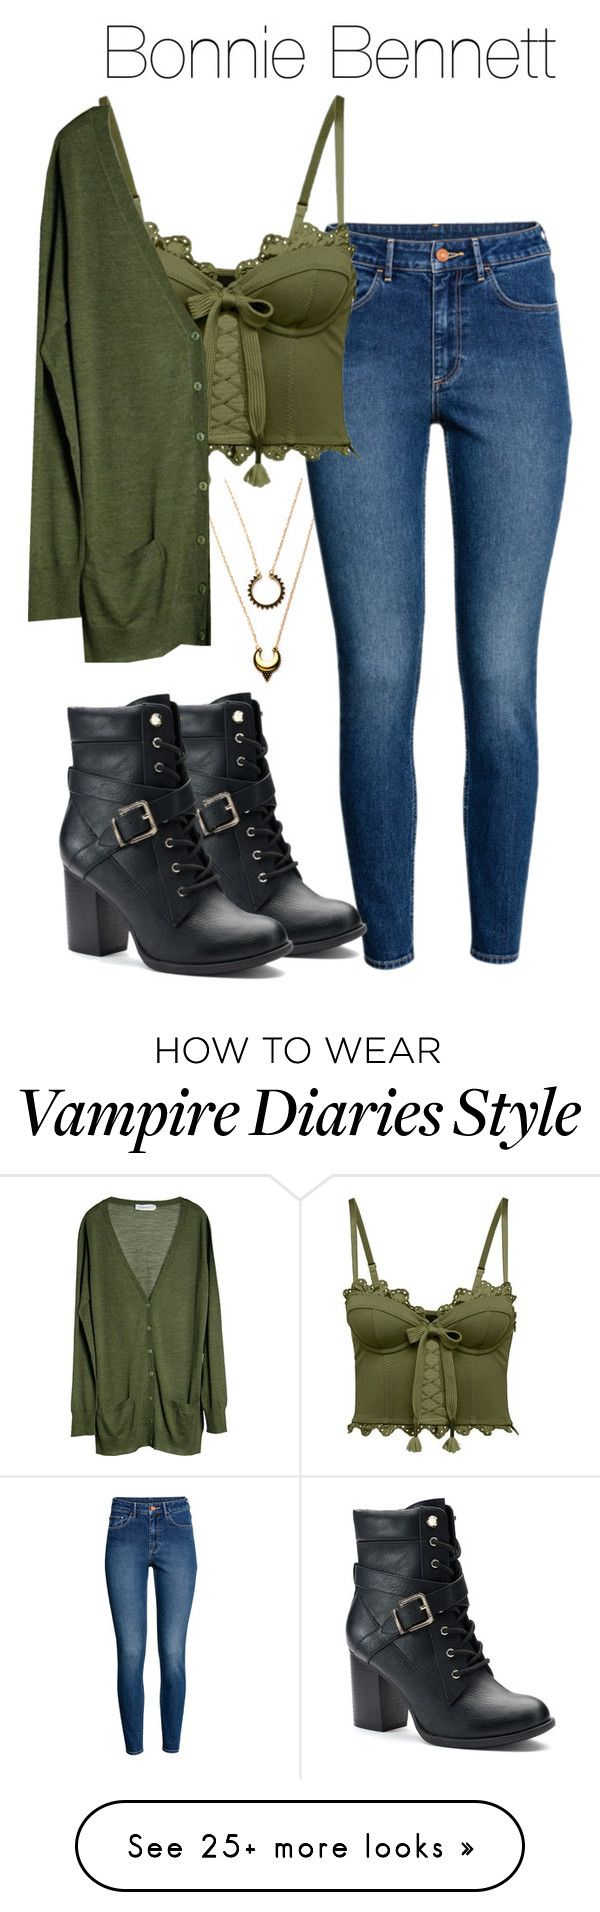 """Bonnie Bennett - tvd / the vampire diaries"" by shadyannon on Polyvore featuring WithChic, H&M, Puma, Apt. 9 and Månestråle"